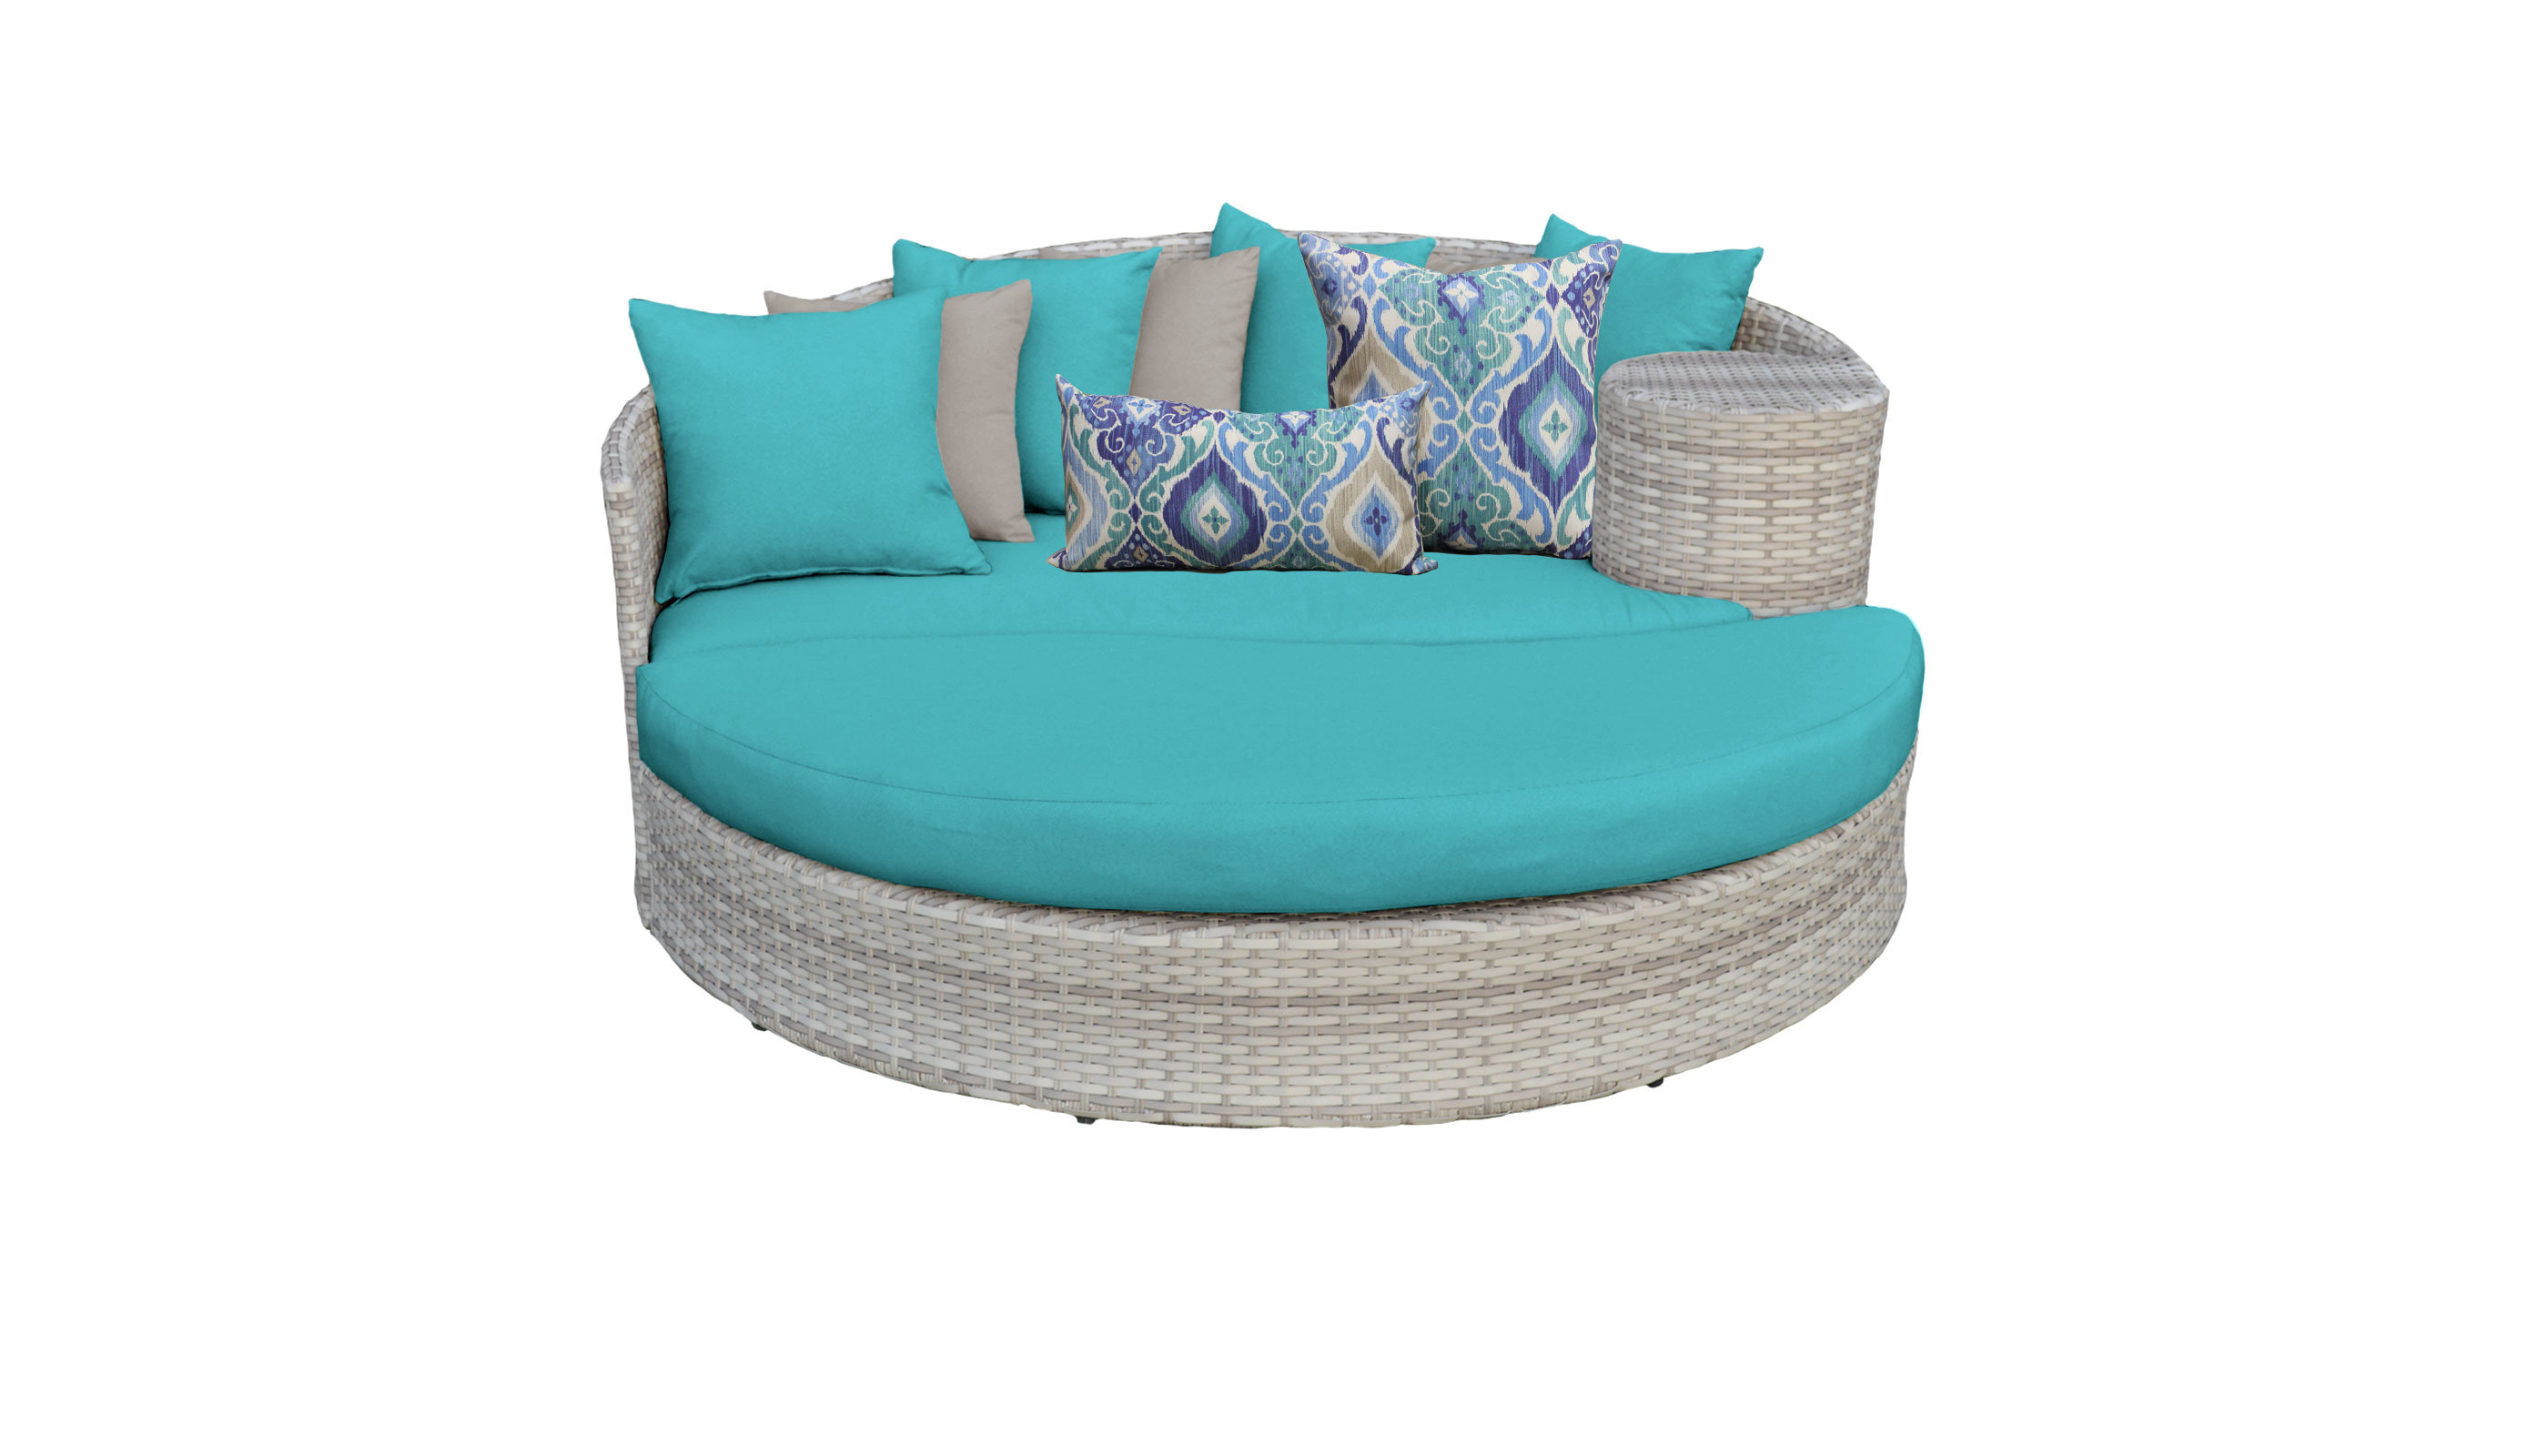 Most Recently Released Falmouth Patio Daybed With Cushions In Freeport Patio Daybeds With Cushion (View 7 of 20)